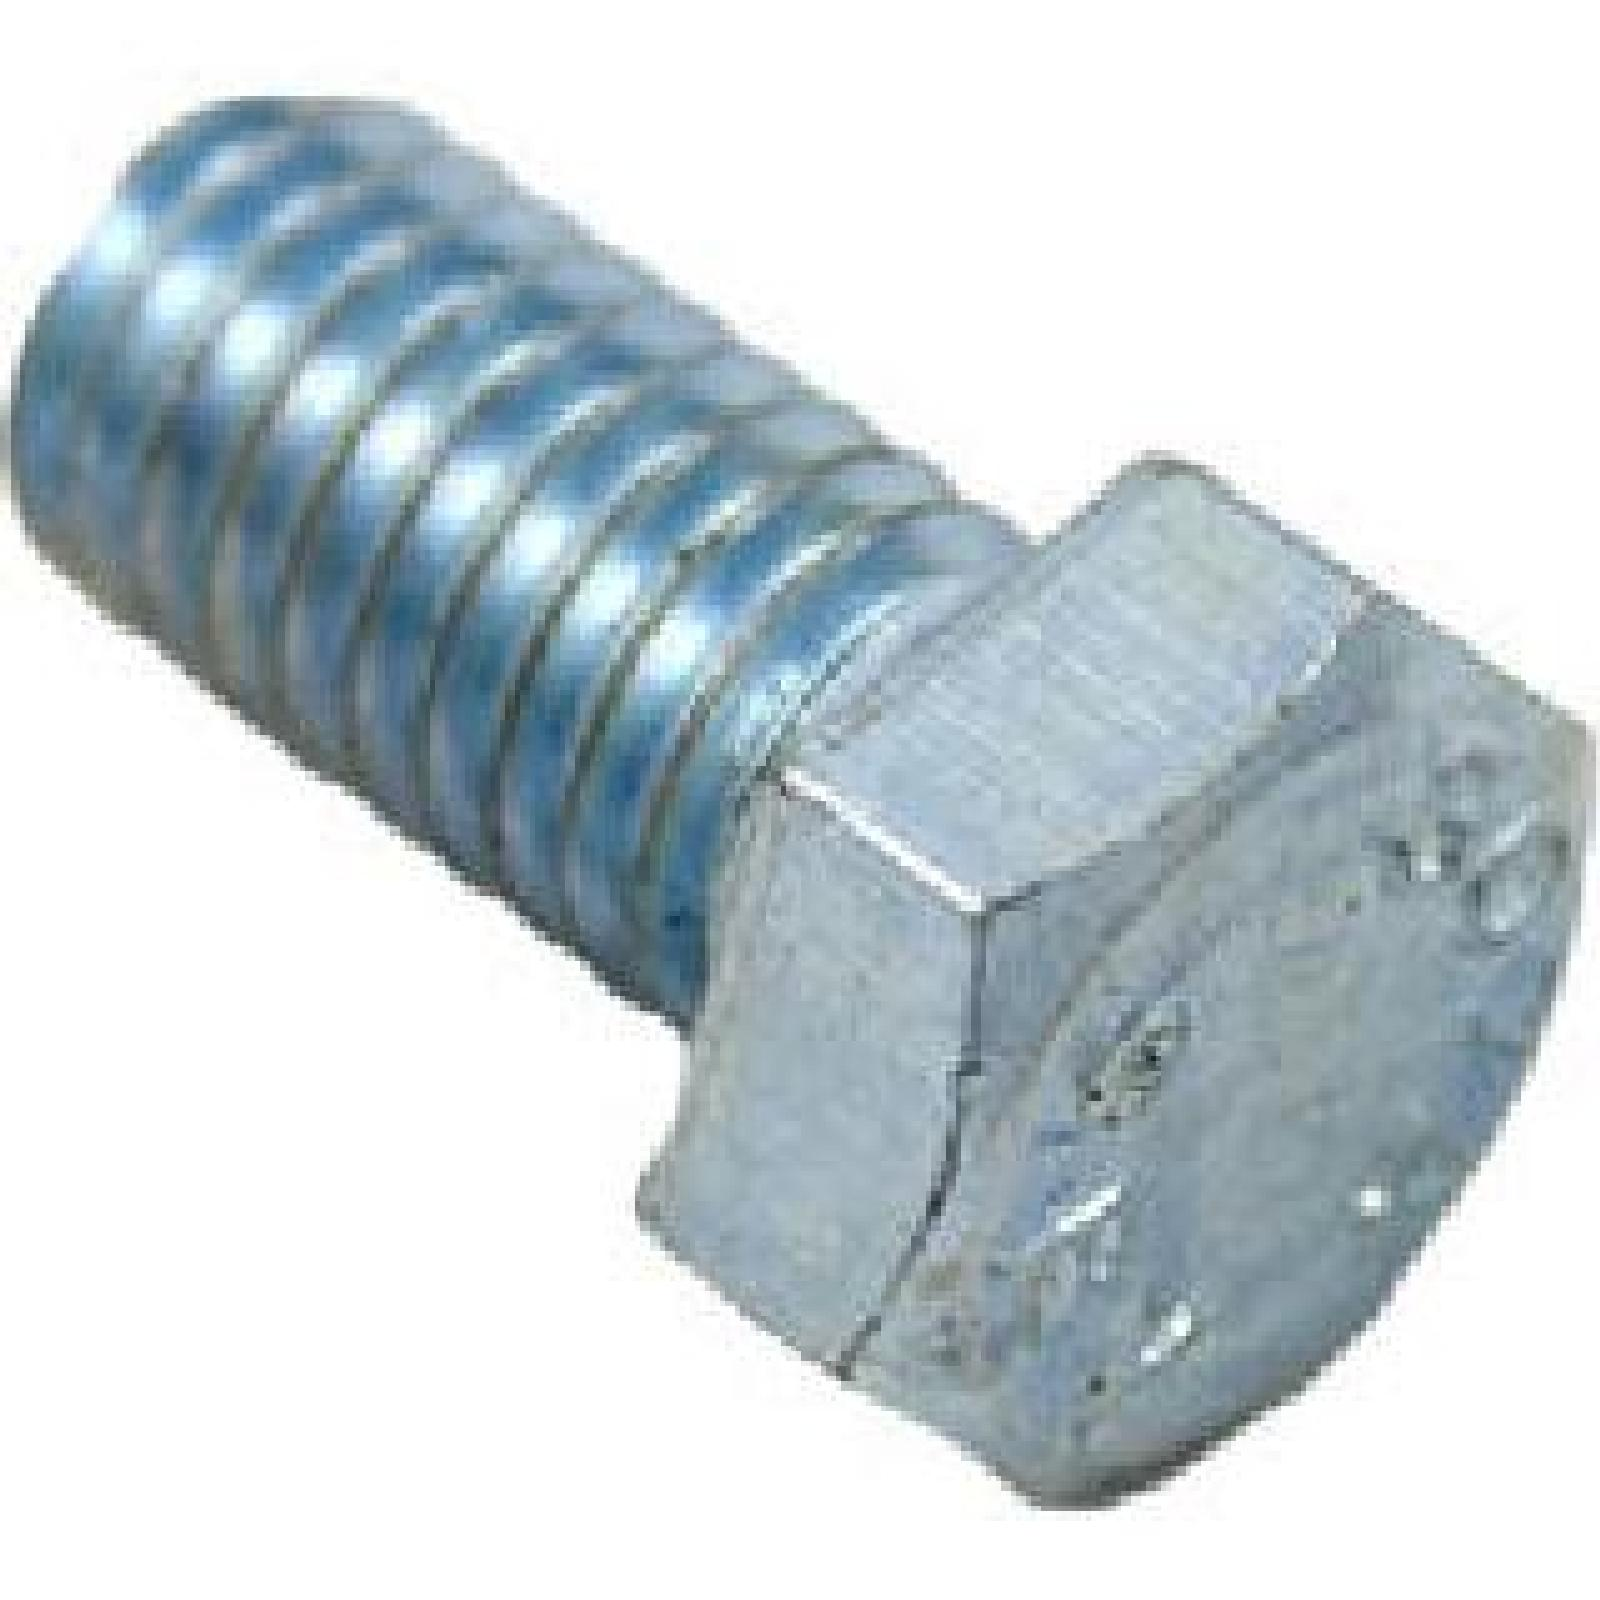 SCREW PPPH 8 16 X .66 BZ part# 0G8382 by Generac